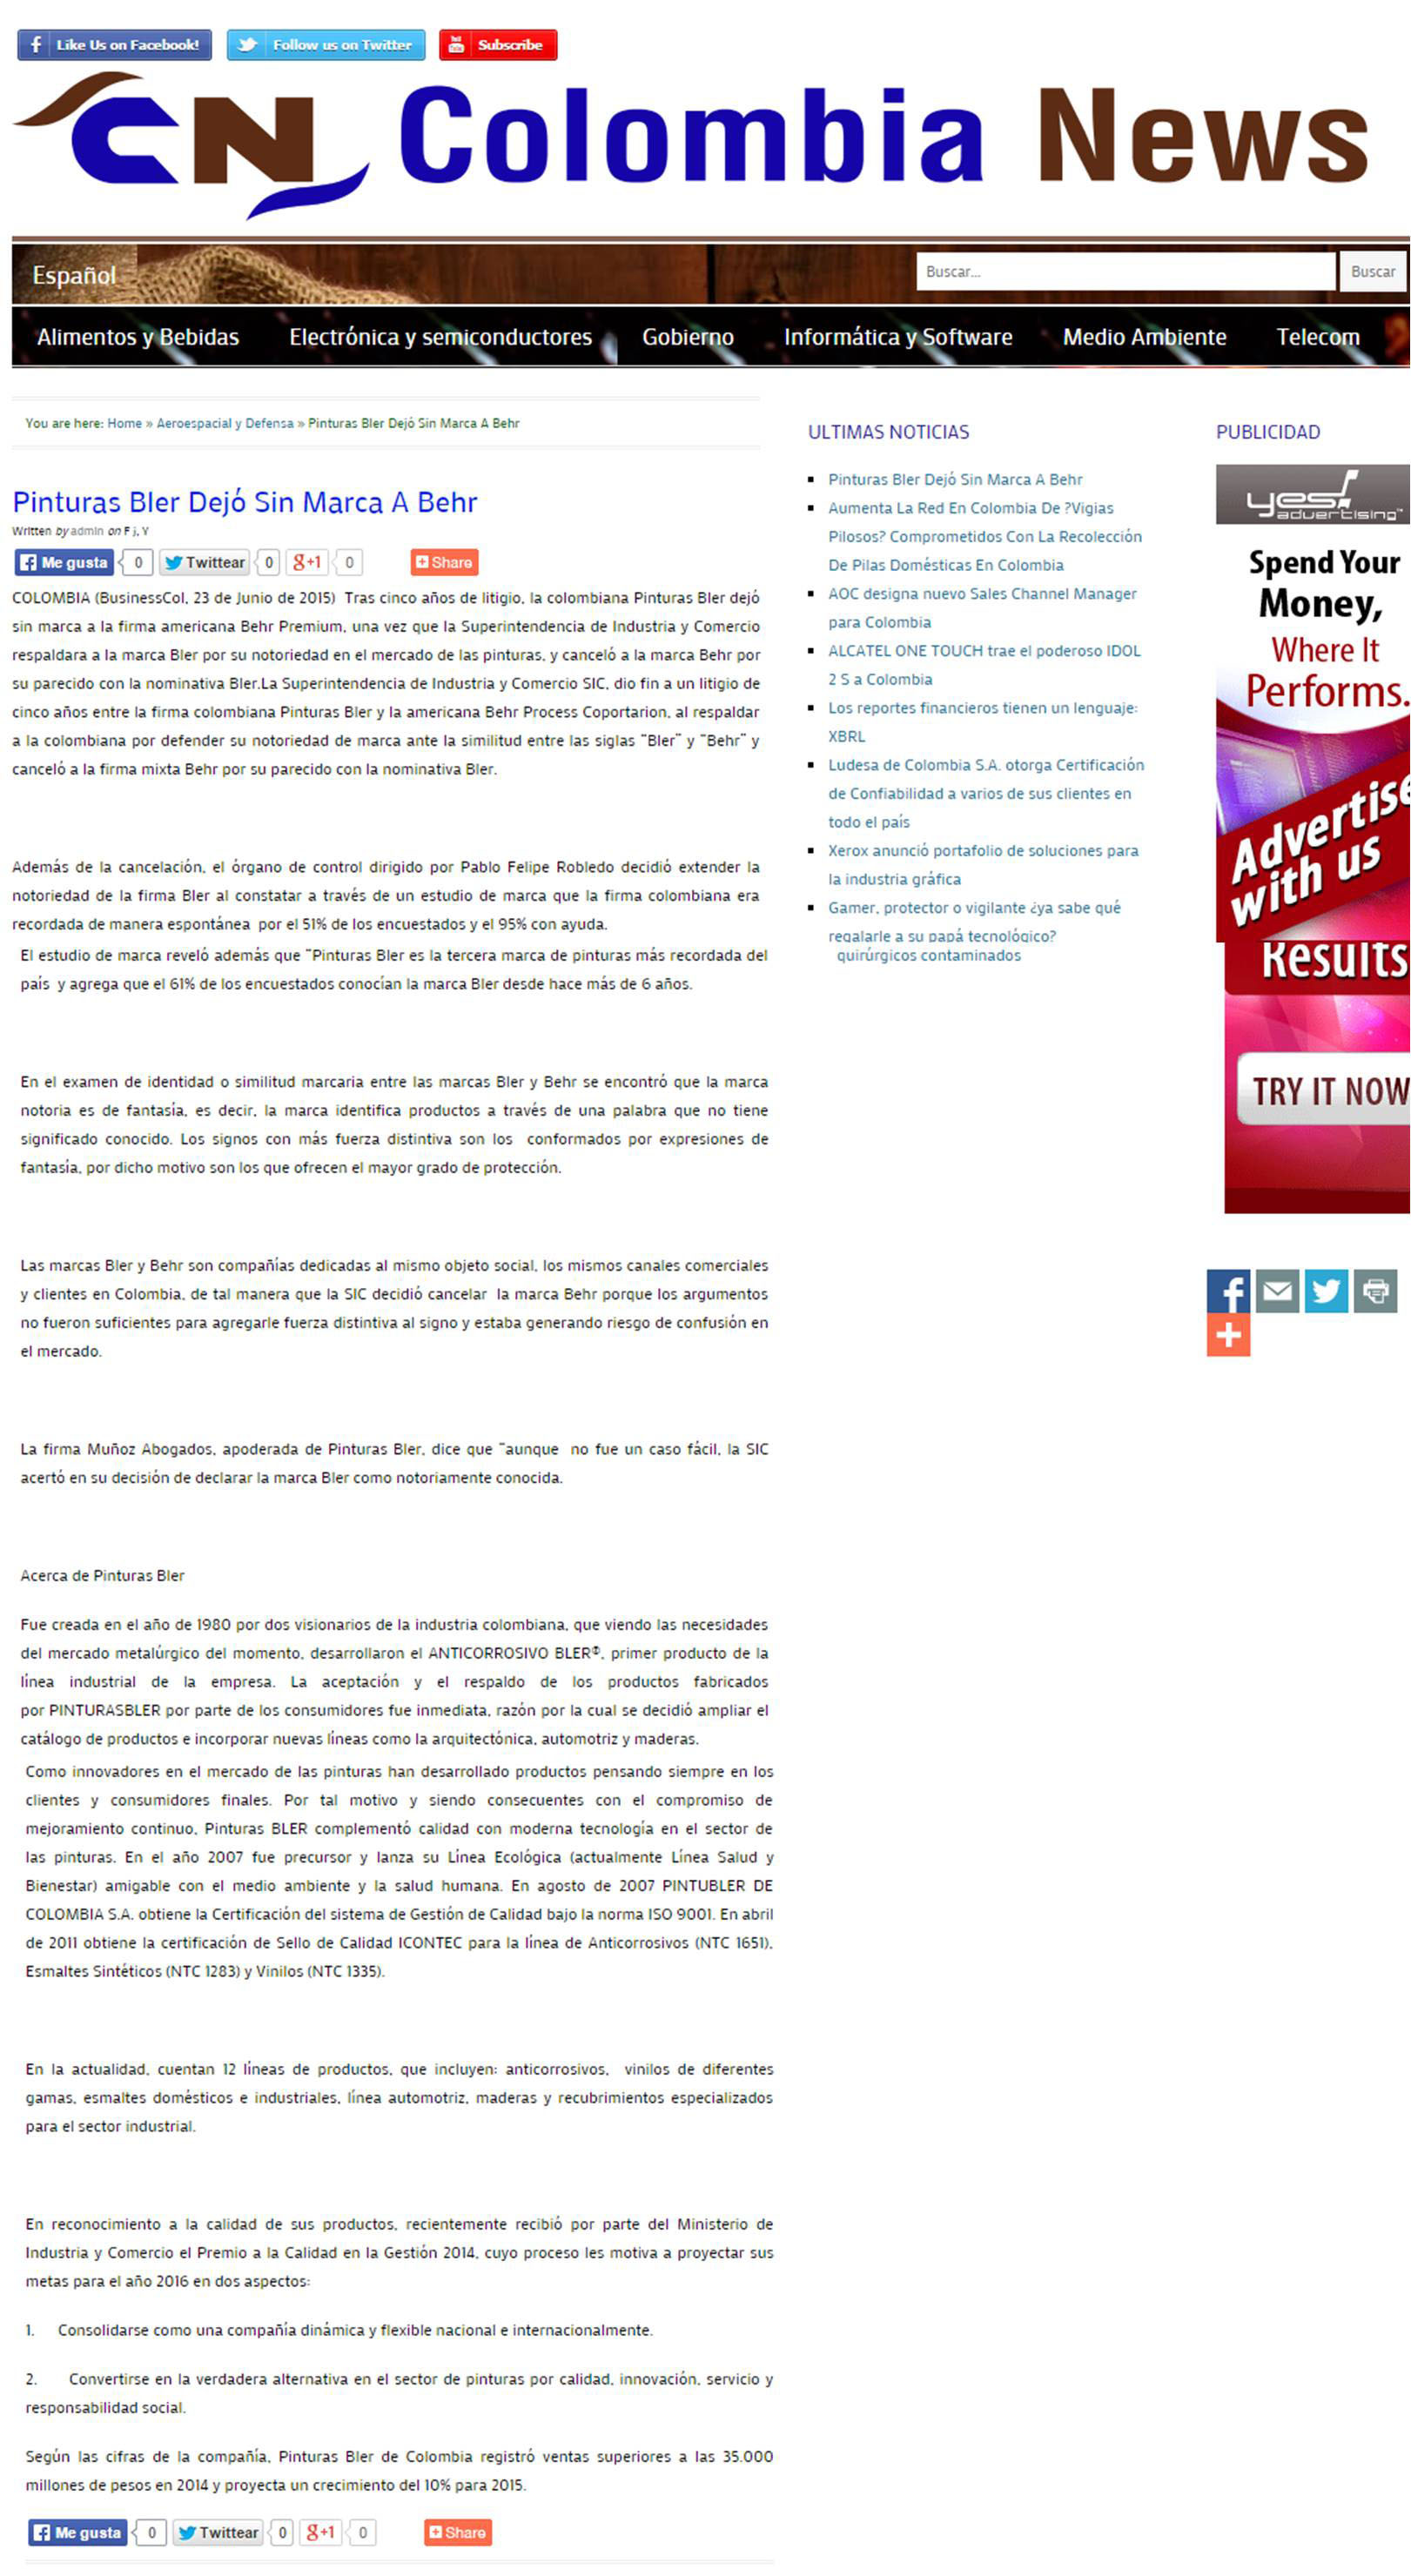 colombinews 23 de junio [web]